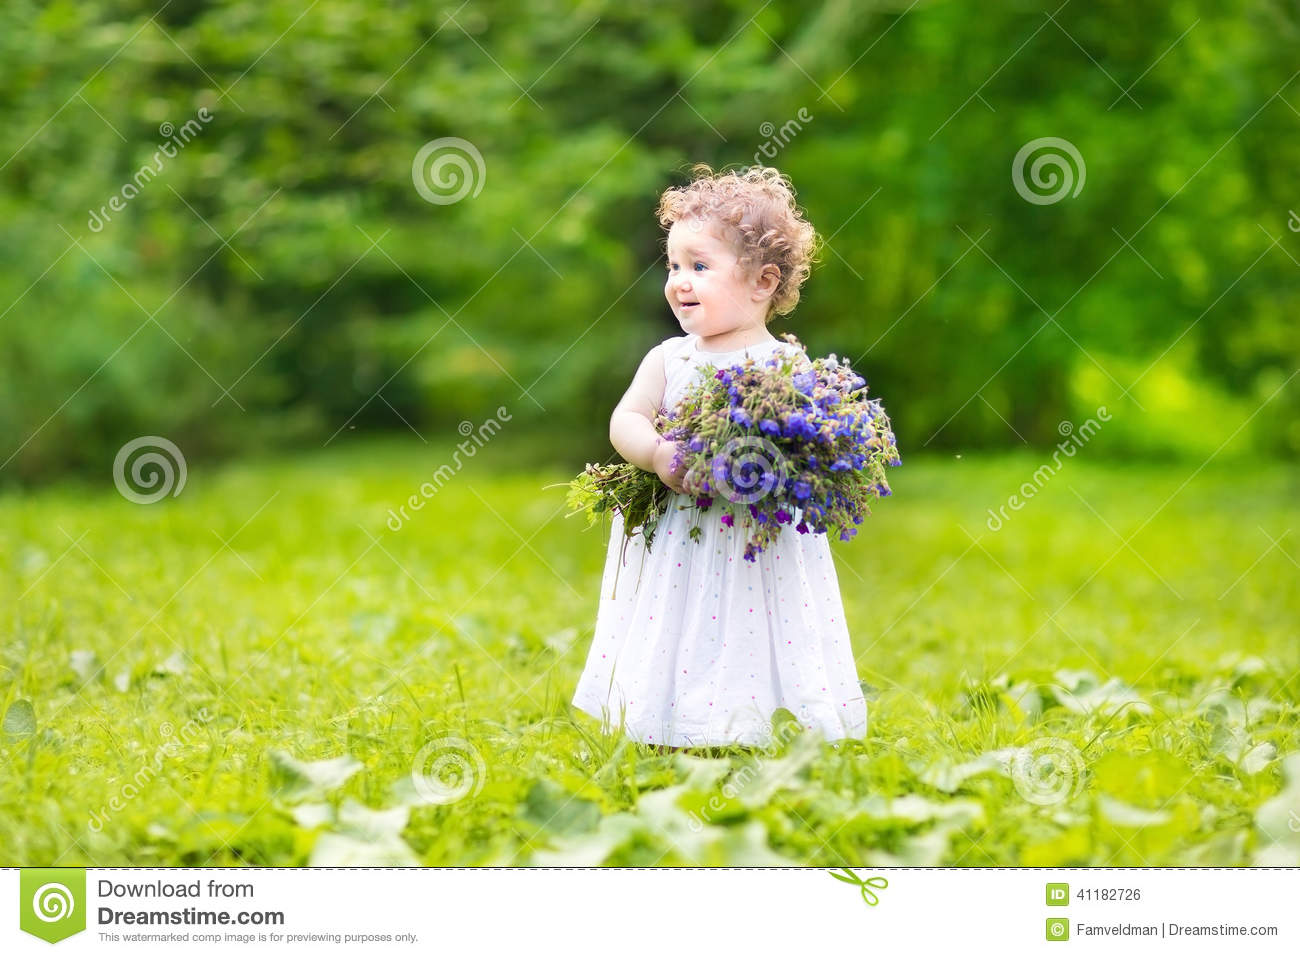 Images of beautiful babies with flowers daily health beautiful baby girl carrying flowers in a garden stock photo image izmirmasajfo